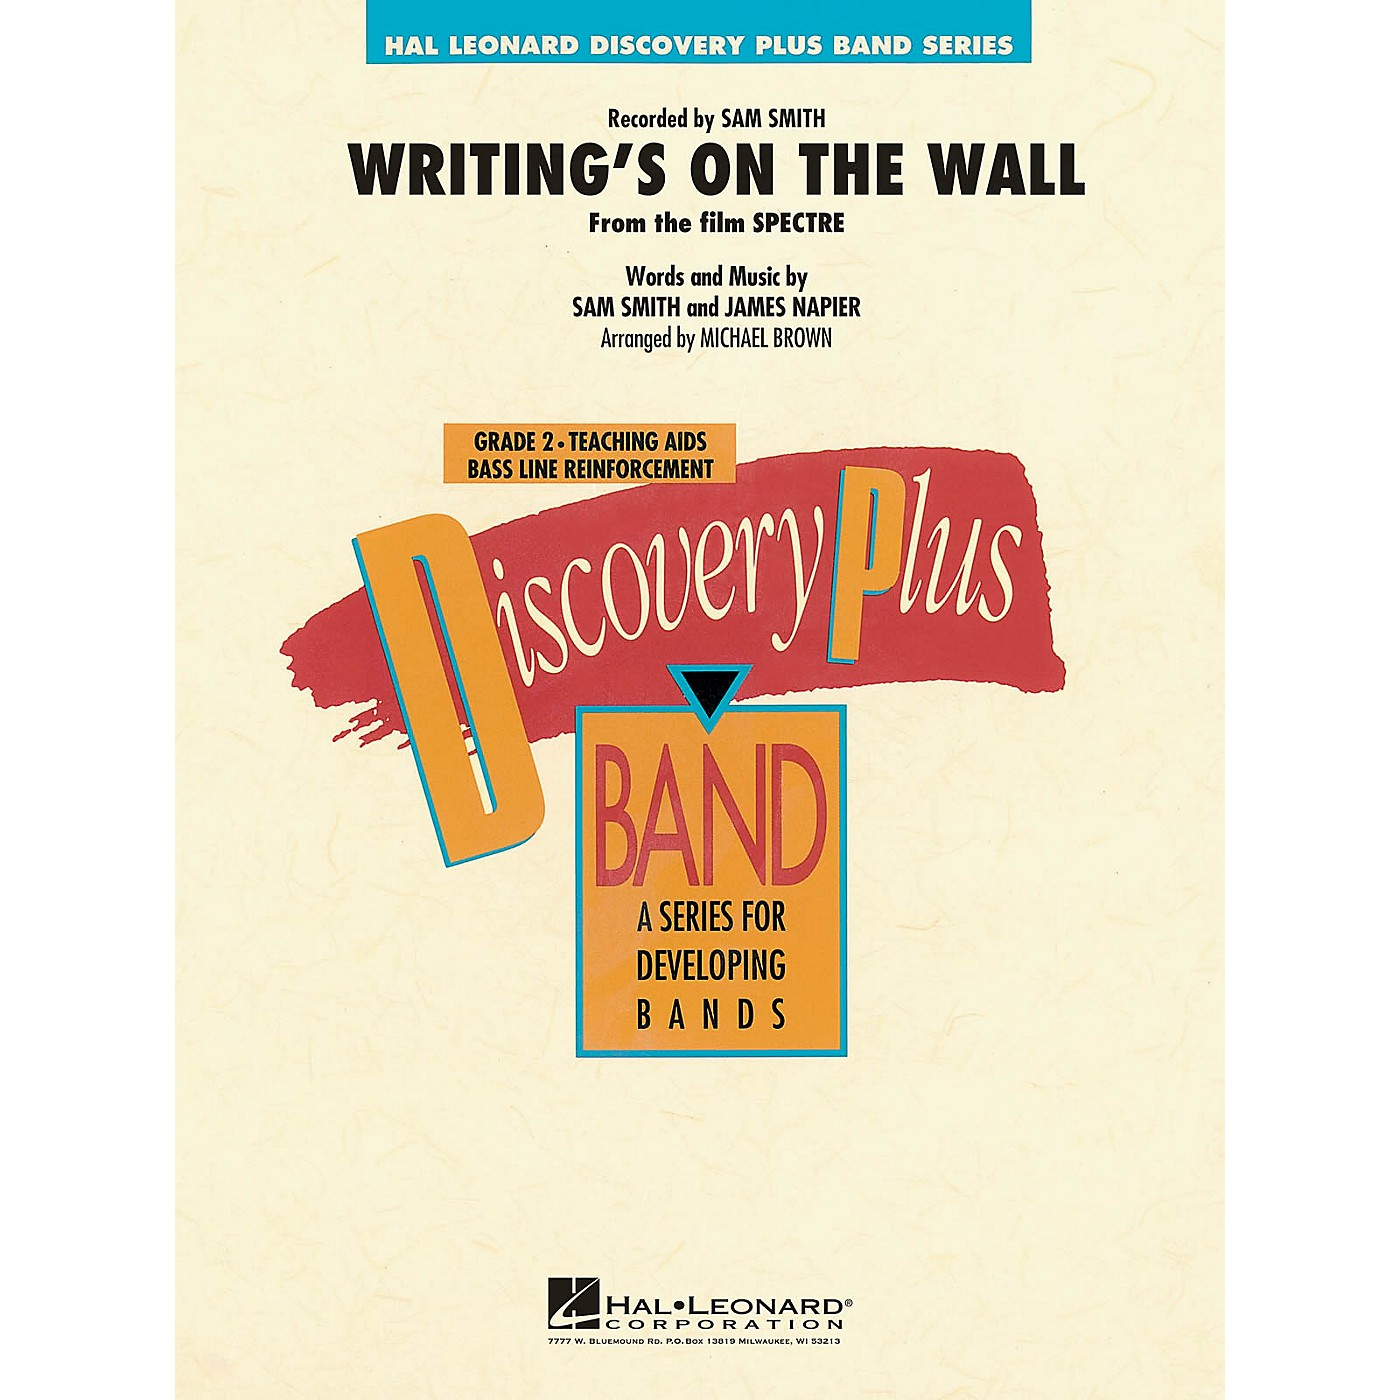 Hal Leonard Writing's on the Wall (from Spectre) - Discovery Plus Band Series Level 2 arranged by Michael Brown thumbnail